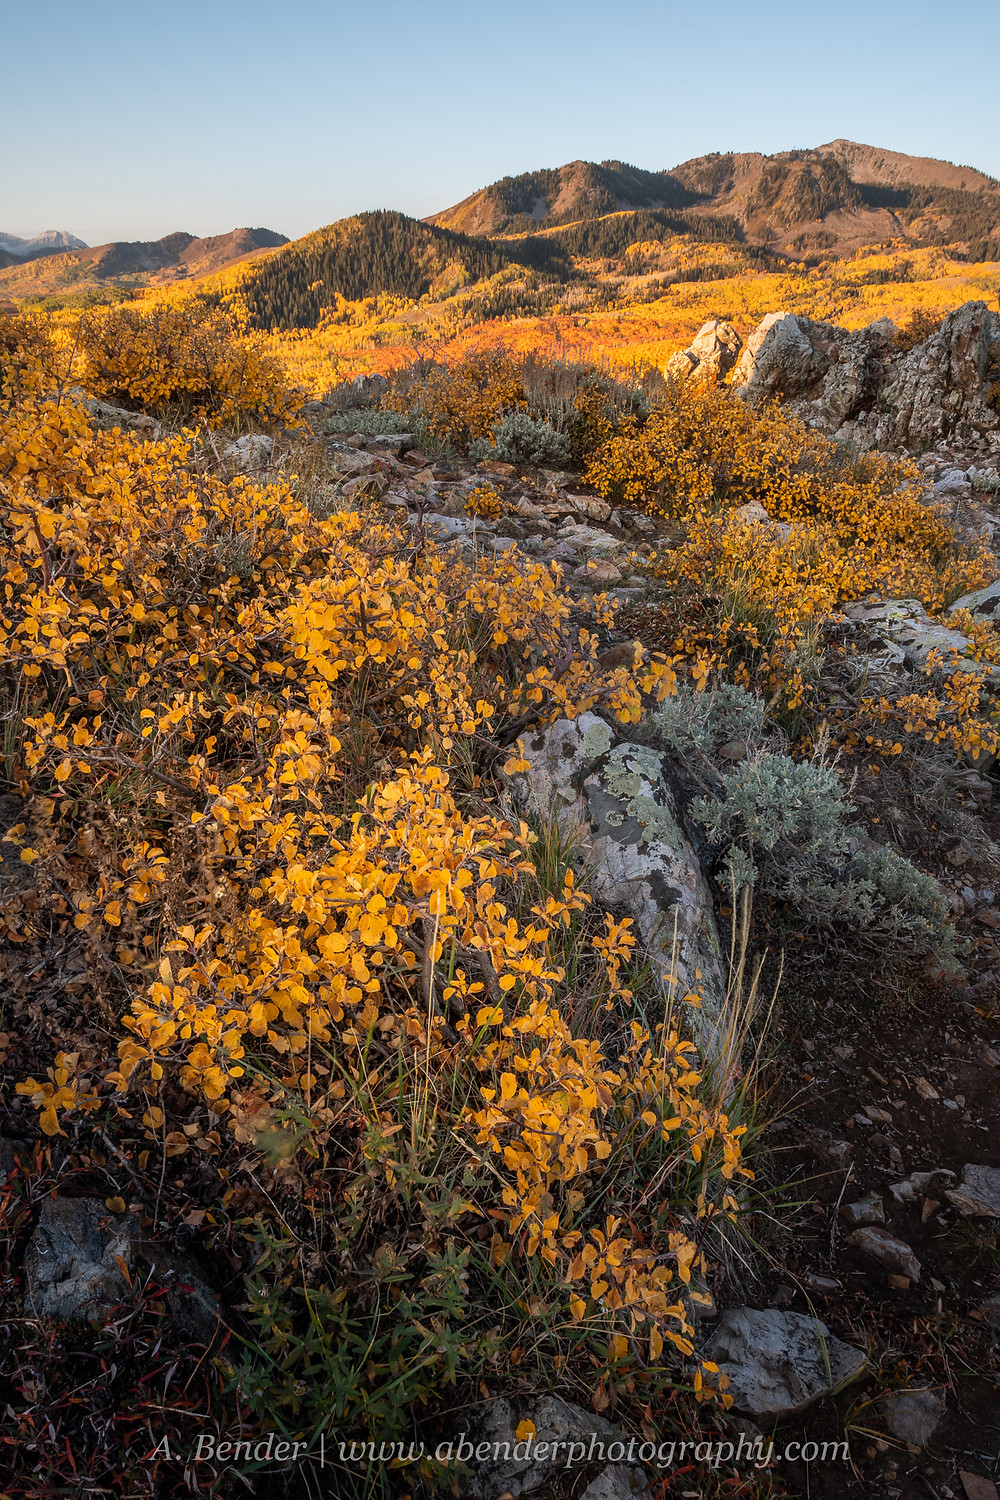 Yellow foliage extends across the frame and from the rocks in the foreground to the mountain sides in the background under blue skies in the Wasatch Mountains Utah 2021 autumn fall foliage | A Bender Photography LLC